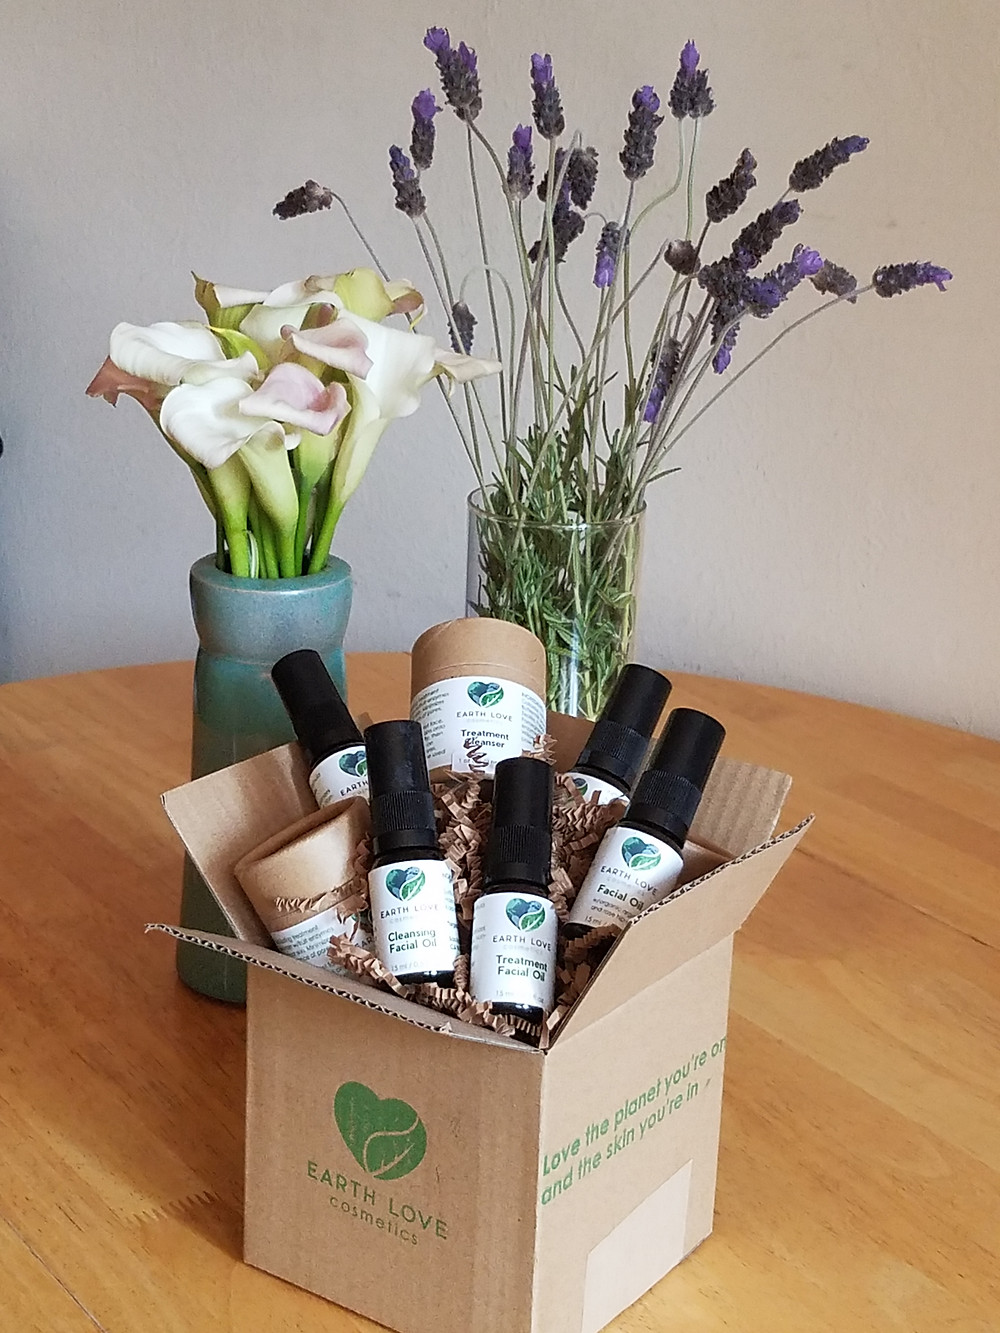 Earth Love Cosmetics products in box with floral displays